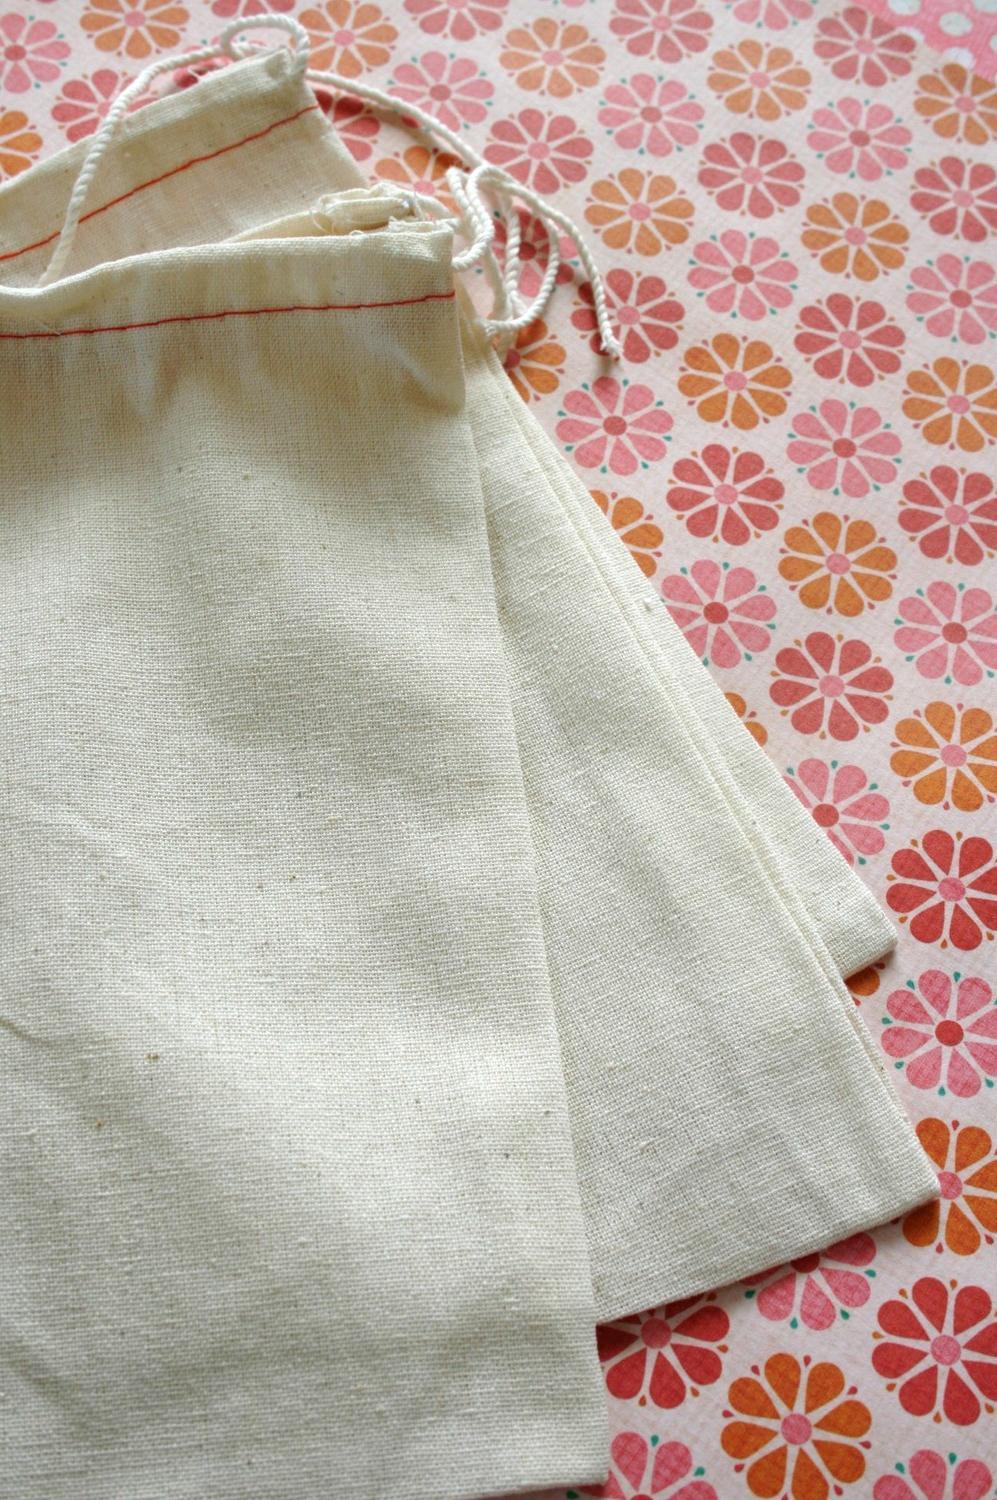 BLANK Cotton Cloth Drawstring